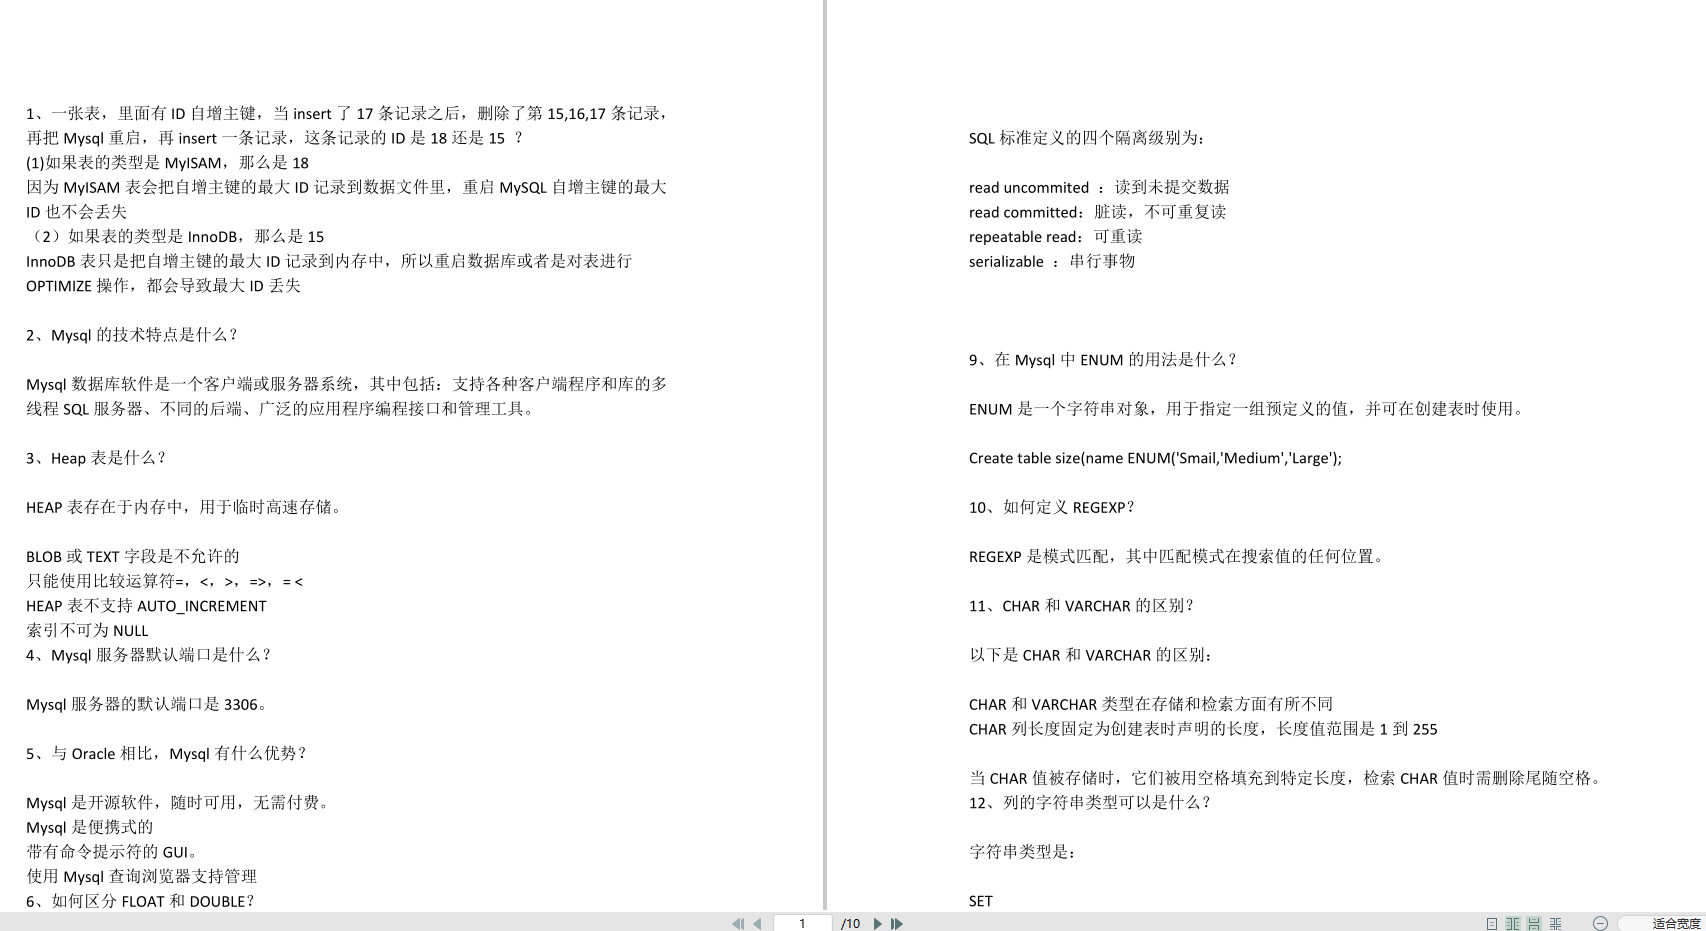 In three steps, MySQL was completed in one day, and I successfully won the Tmall offer